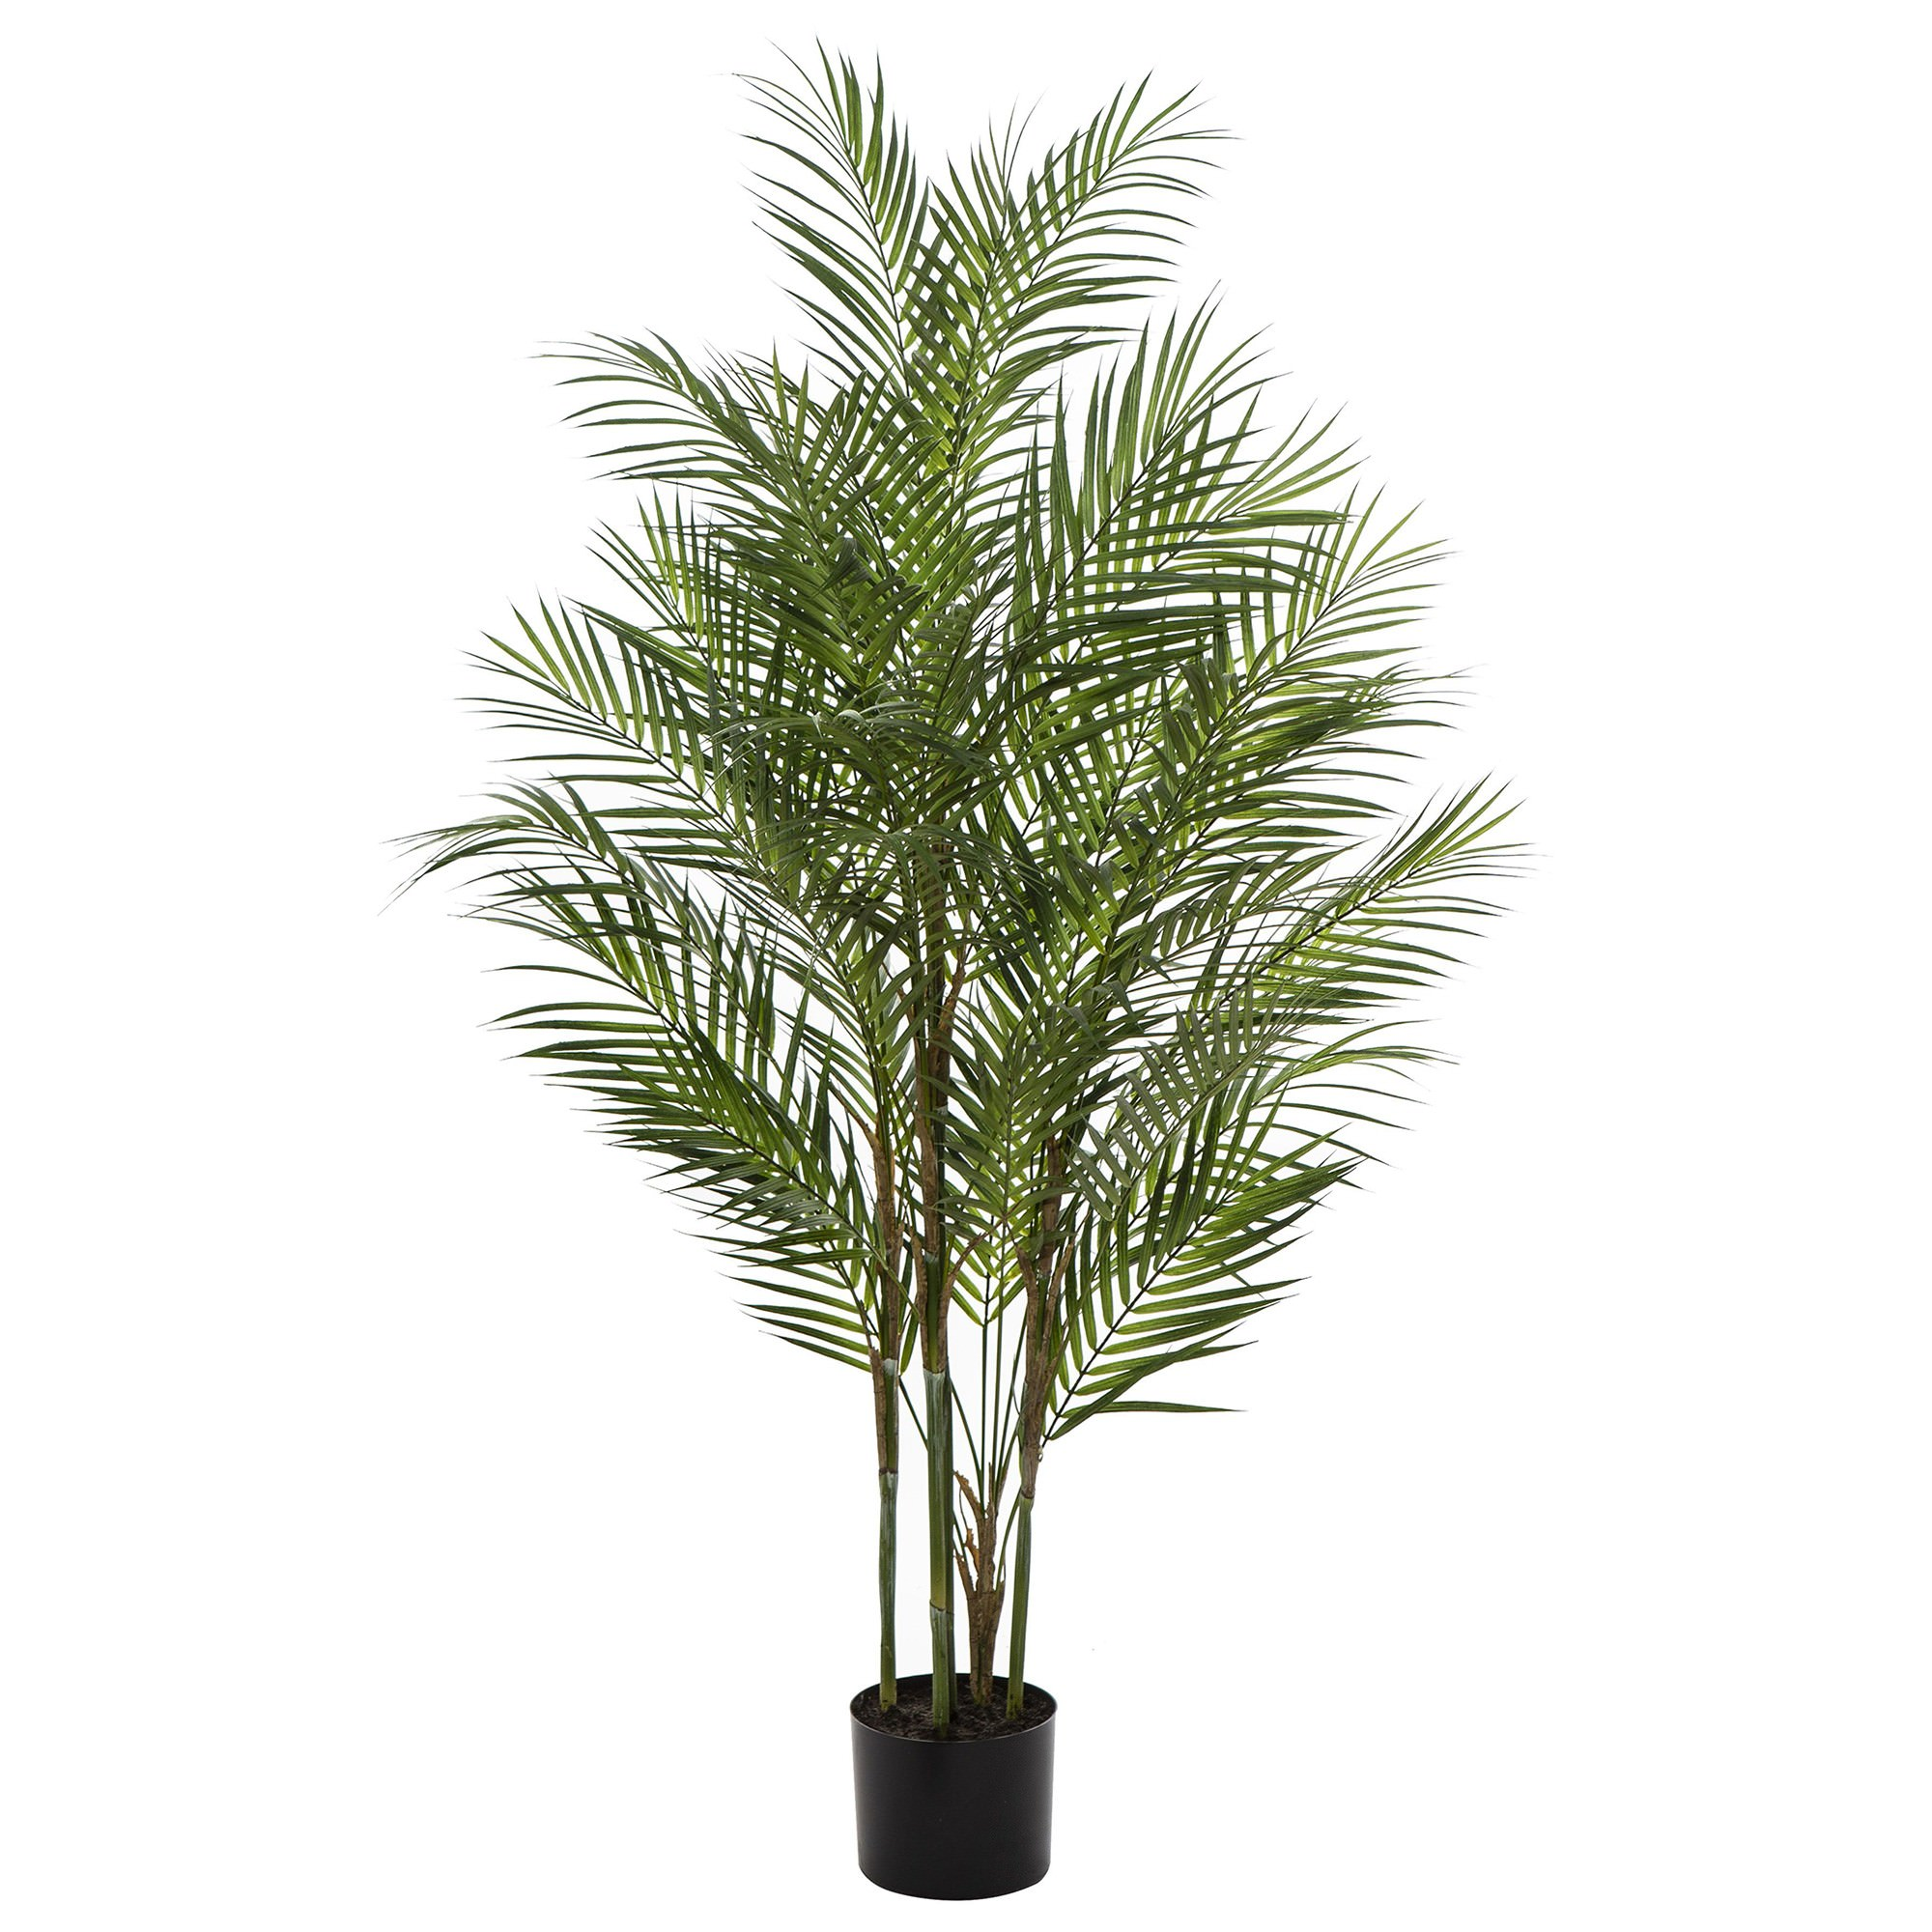 Potted Artificial Phoenix Palm Tree, 122cm